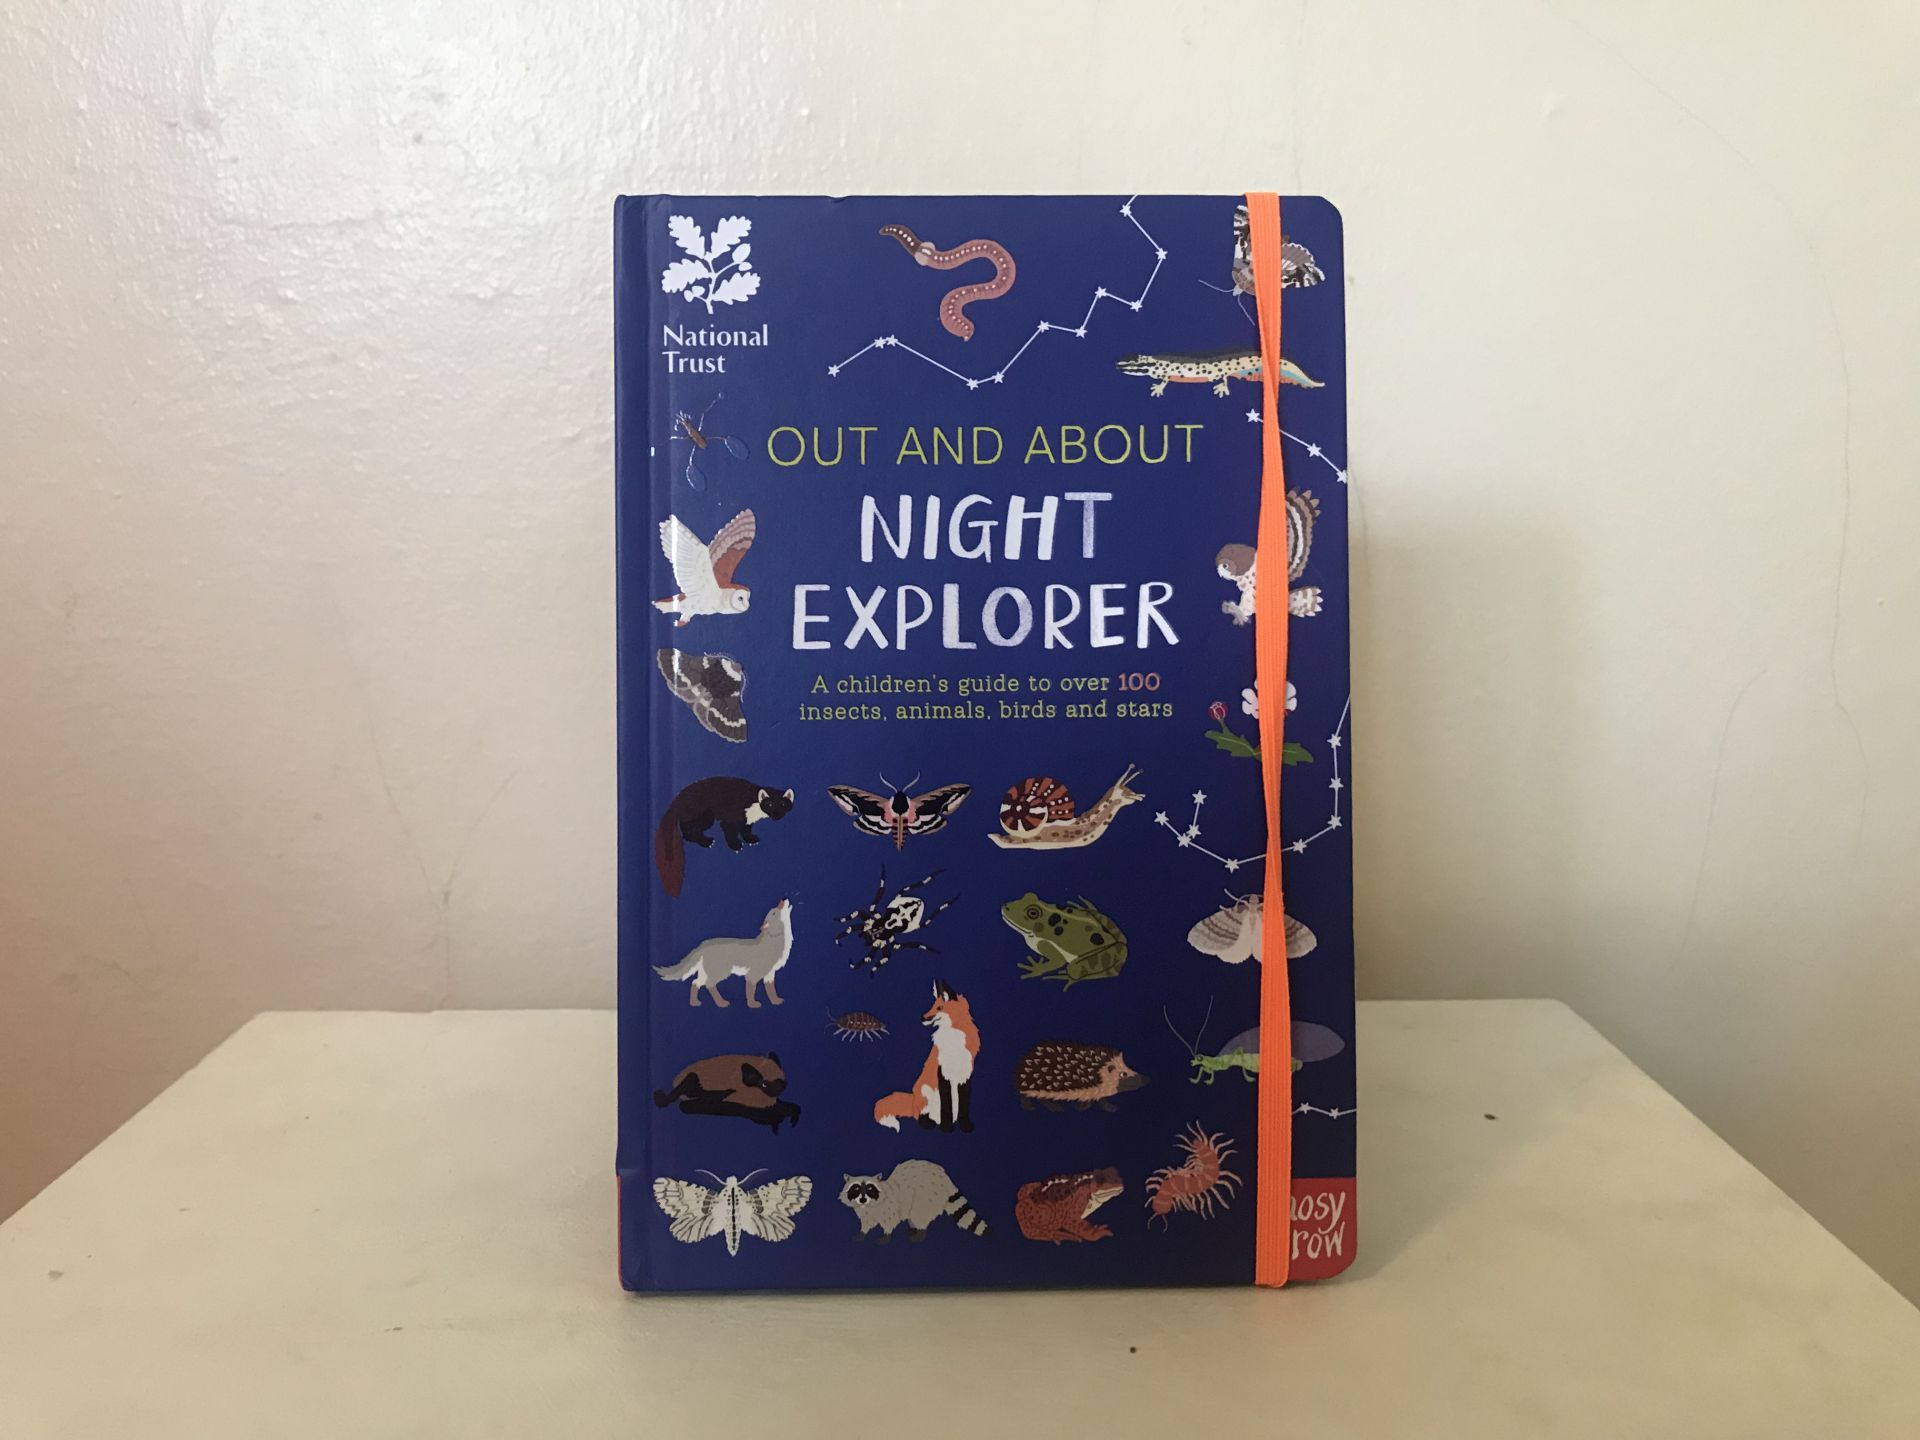 A nighttime explorer book for kids